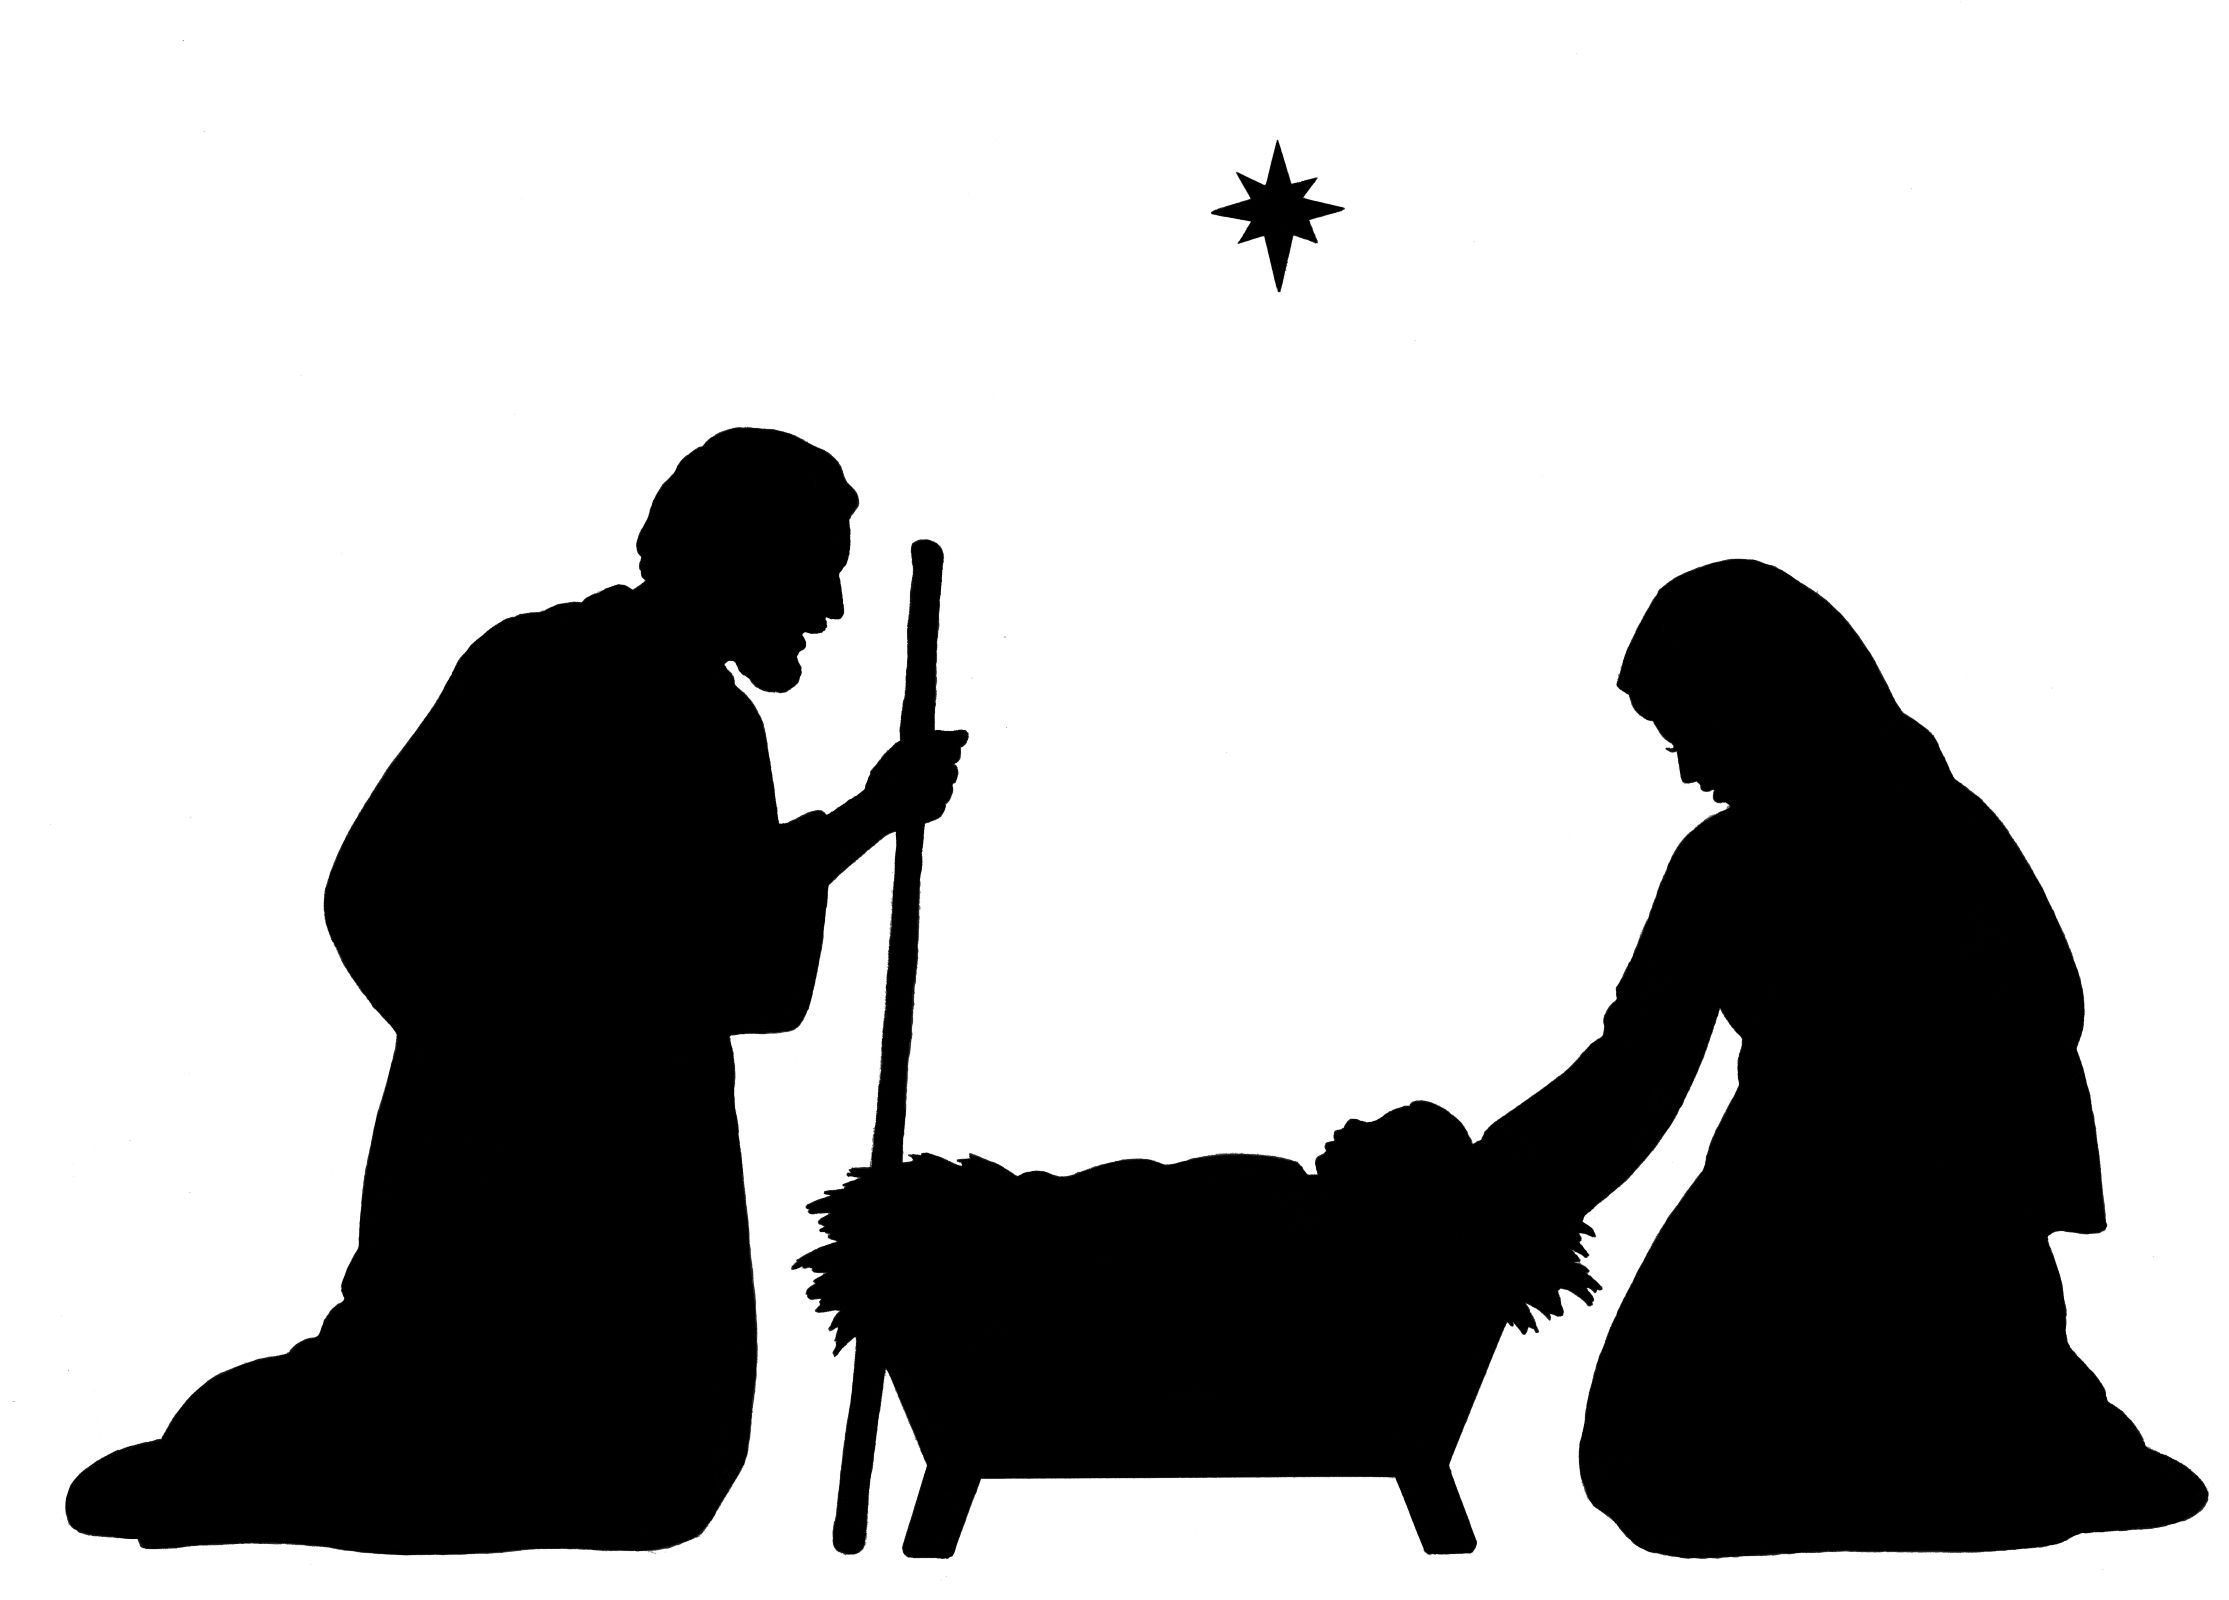 2229x1600 Nativity Silhouette 1168754 Wallpaper.jpg Pixels